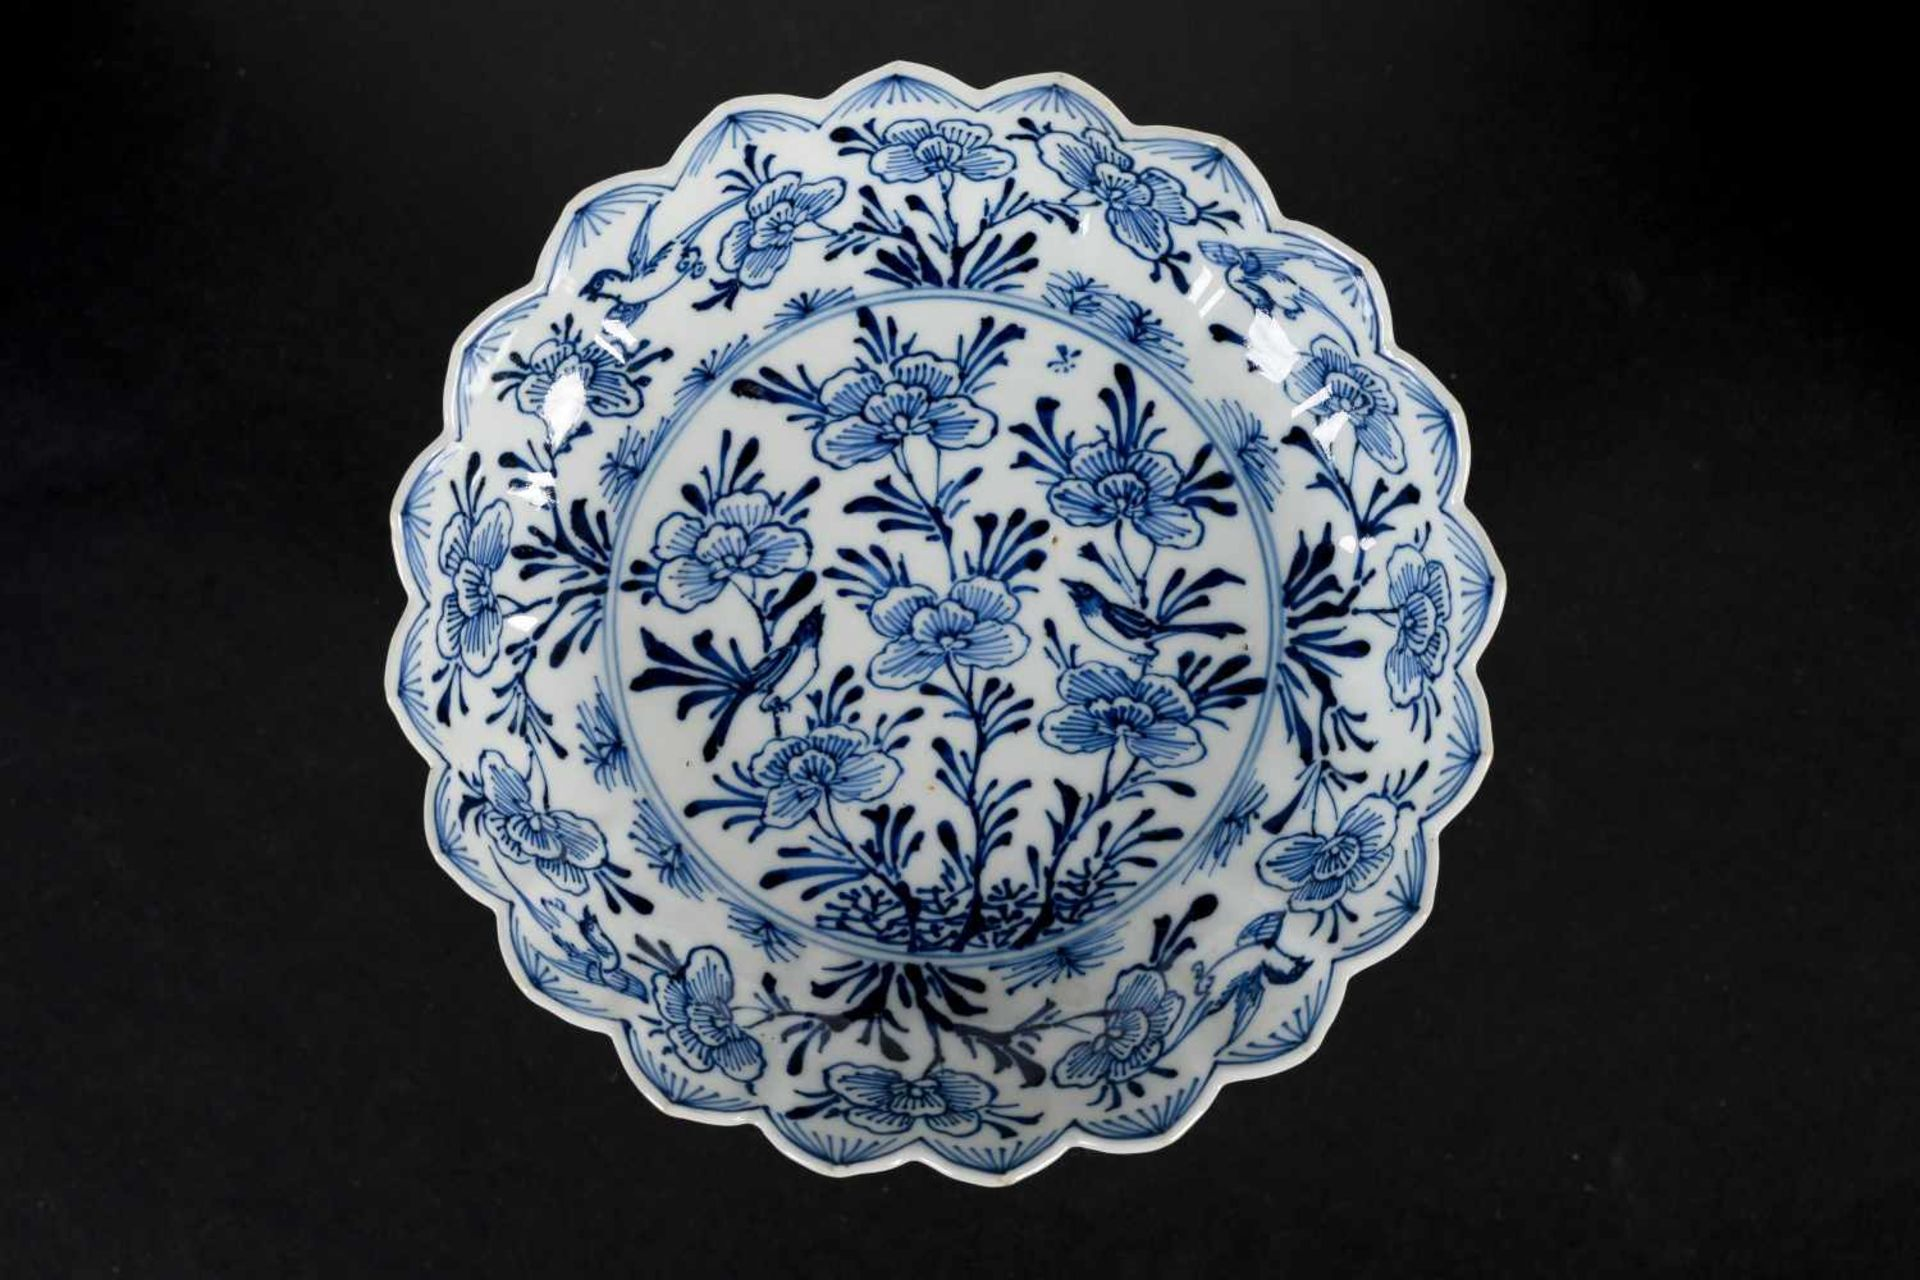 A set of six blue and white porcelain deep saucers with scalloped rim, decorated with flowers and - Bild 2 aus 8